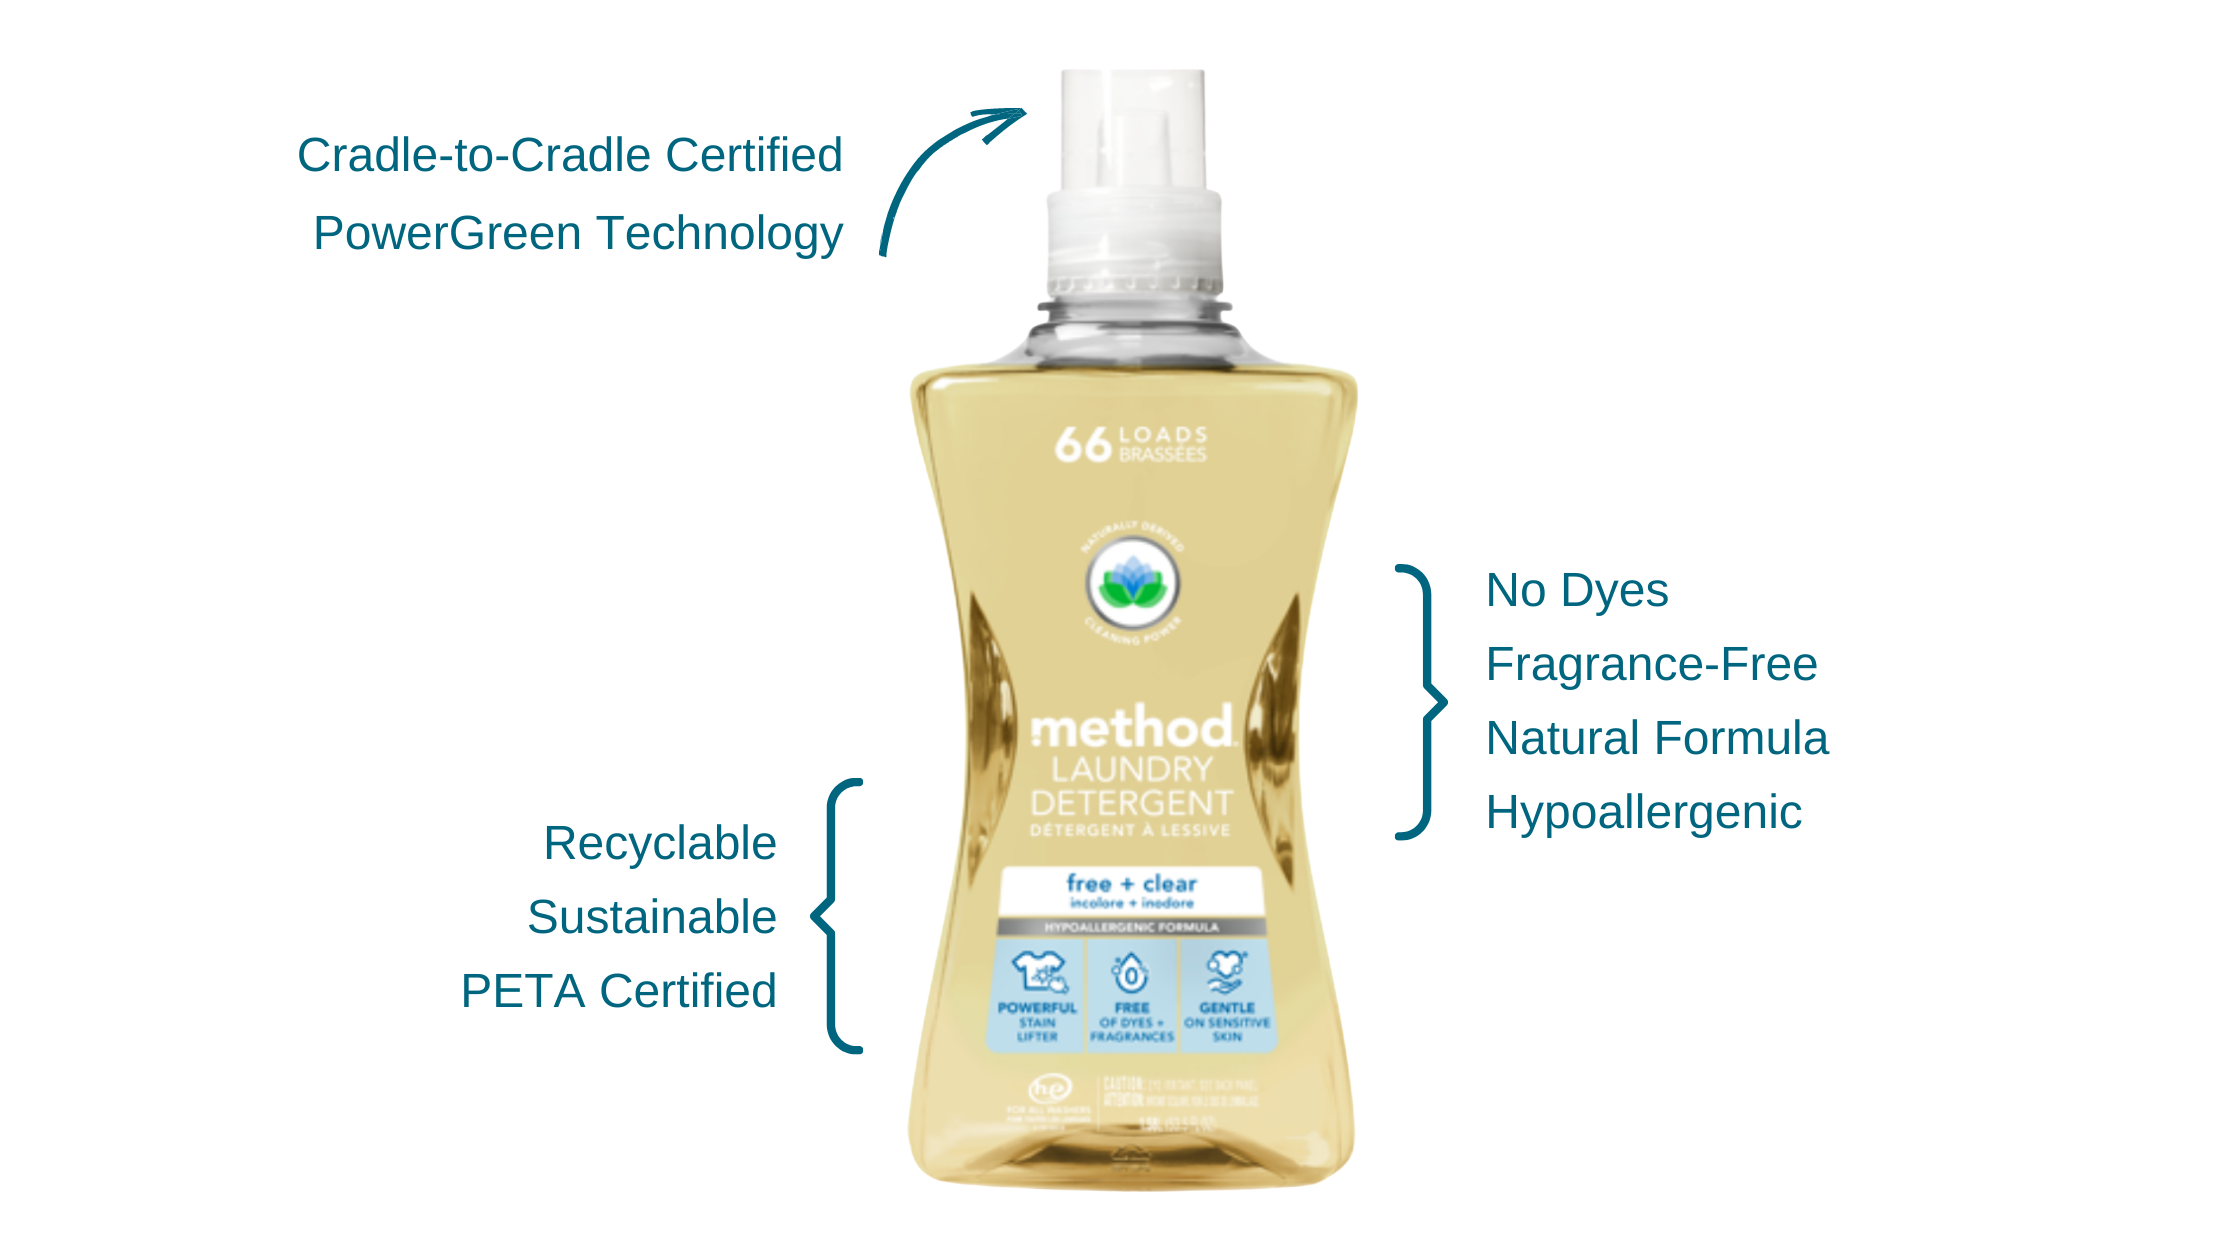 Best Fragrance-Free Laundry Detergent in Canada - method Laundry Detergent, Free & Clear